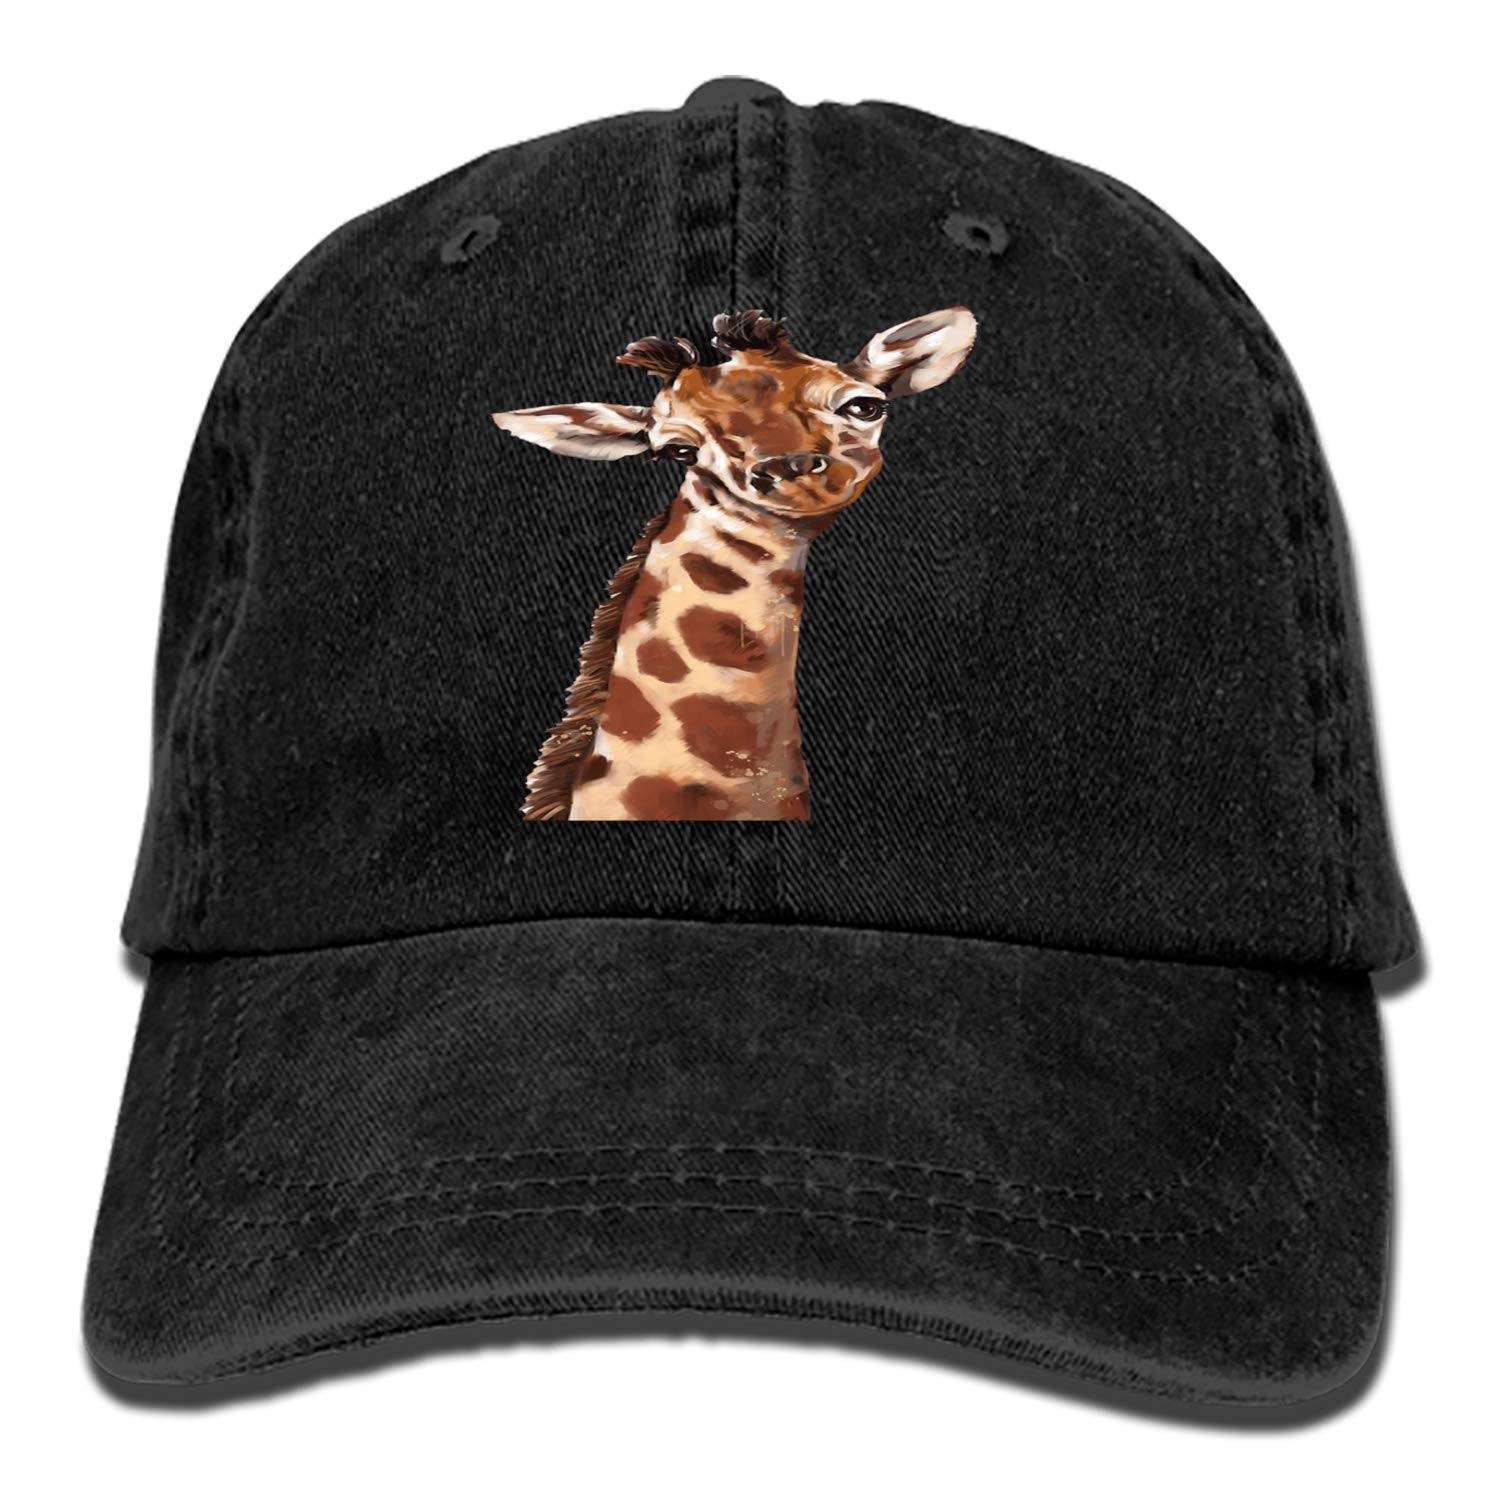 Dad Trucker Snapback Hat Custom Cartoon Giraffe Classic Cotton Adjustable Baseball Cap